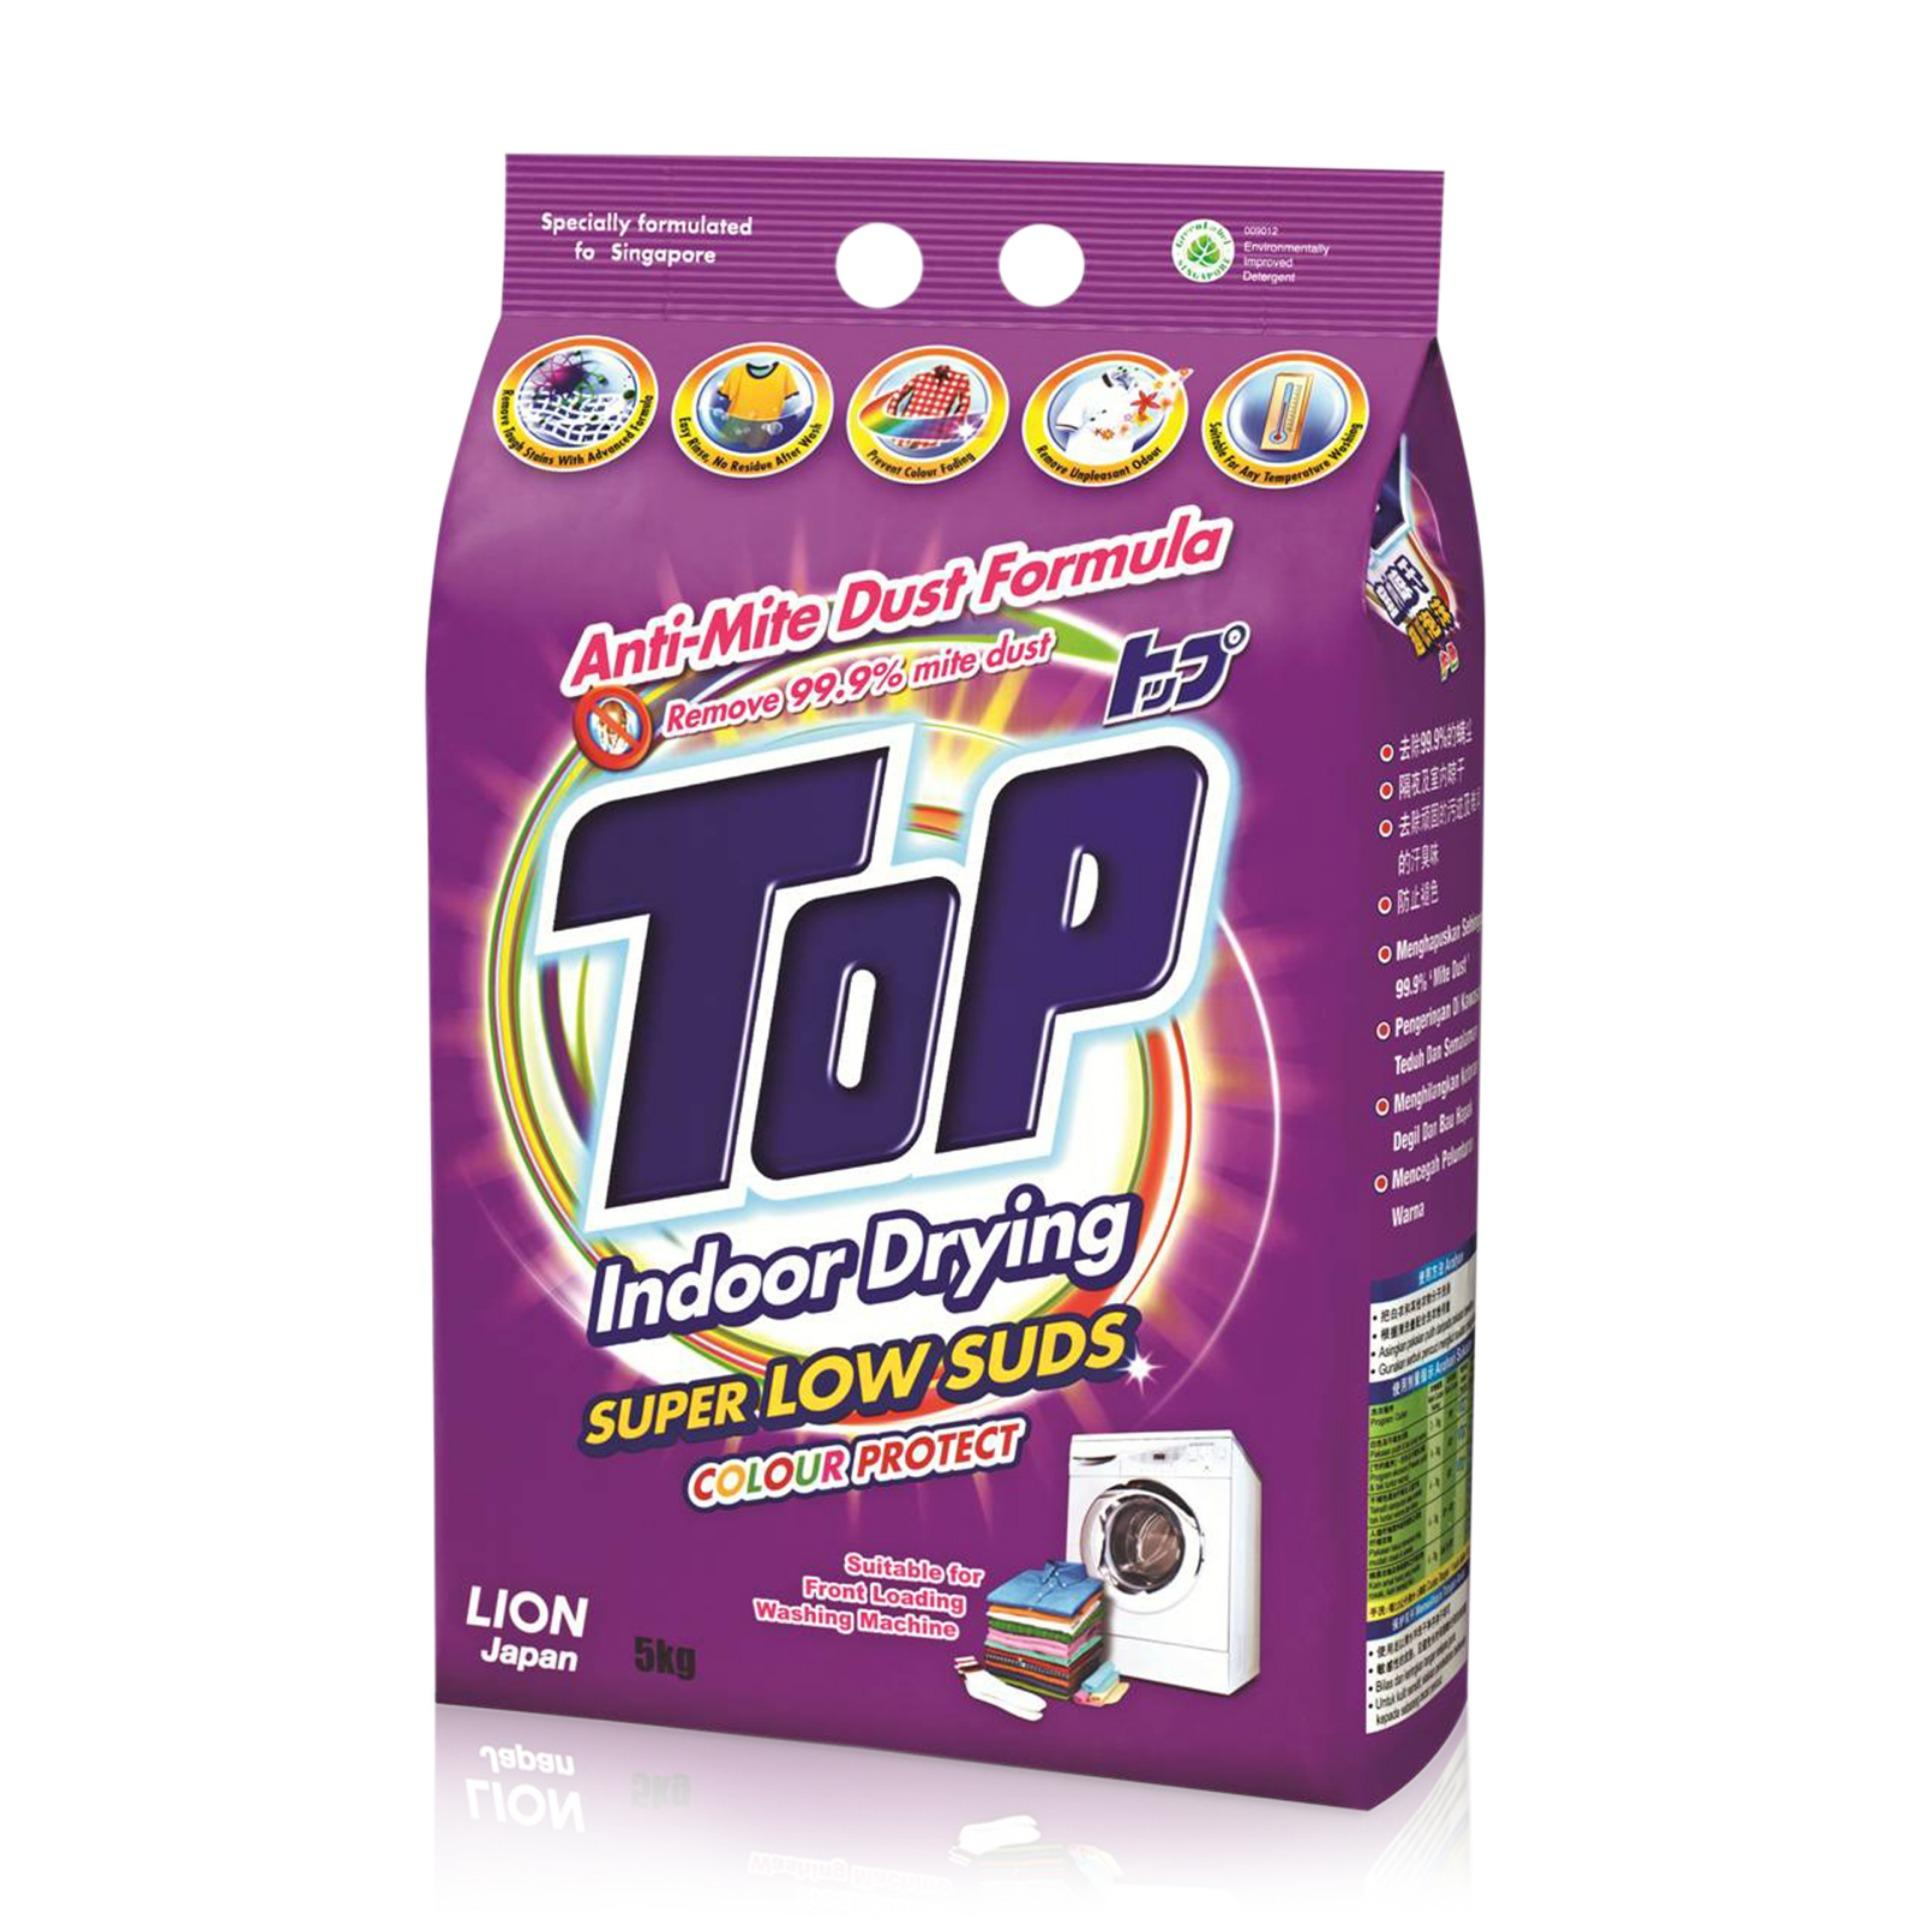 Price Top Detergent Anti Mite Dust Super Low Suds Colour Protect 5Kg Top Online